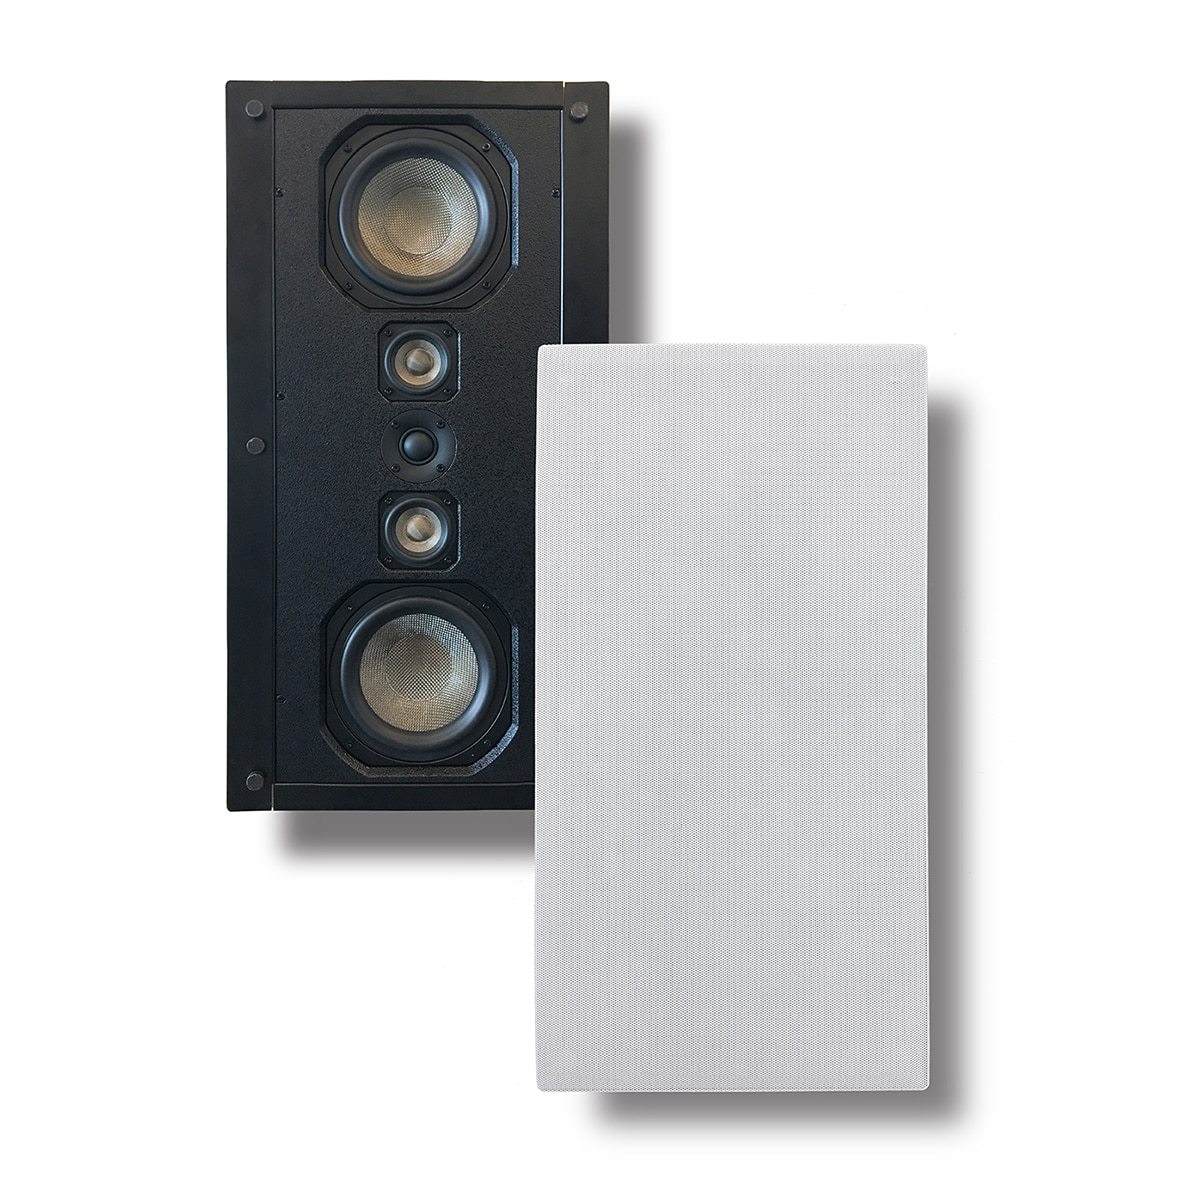 In Wall Speakers: Maxwell Series M-8650 Grille